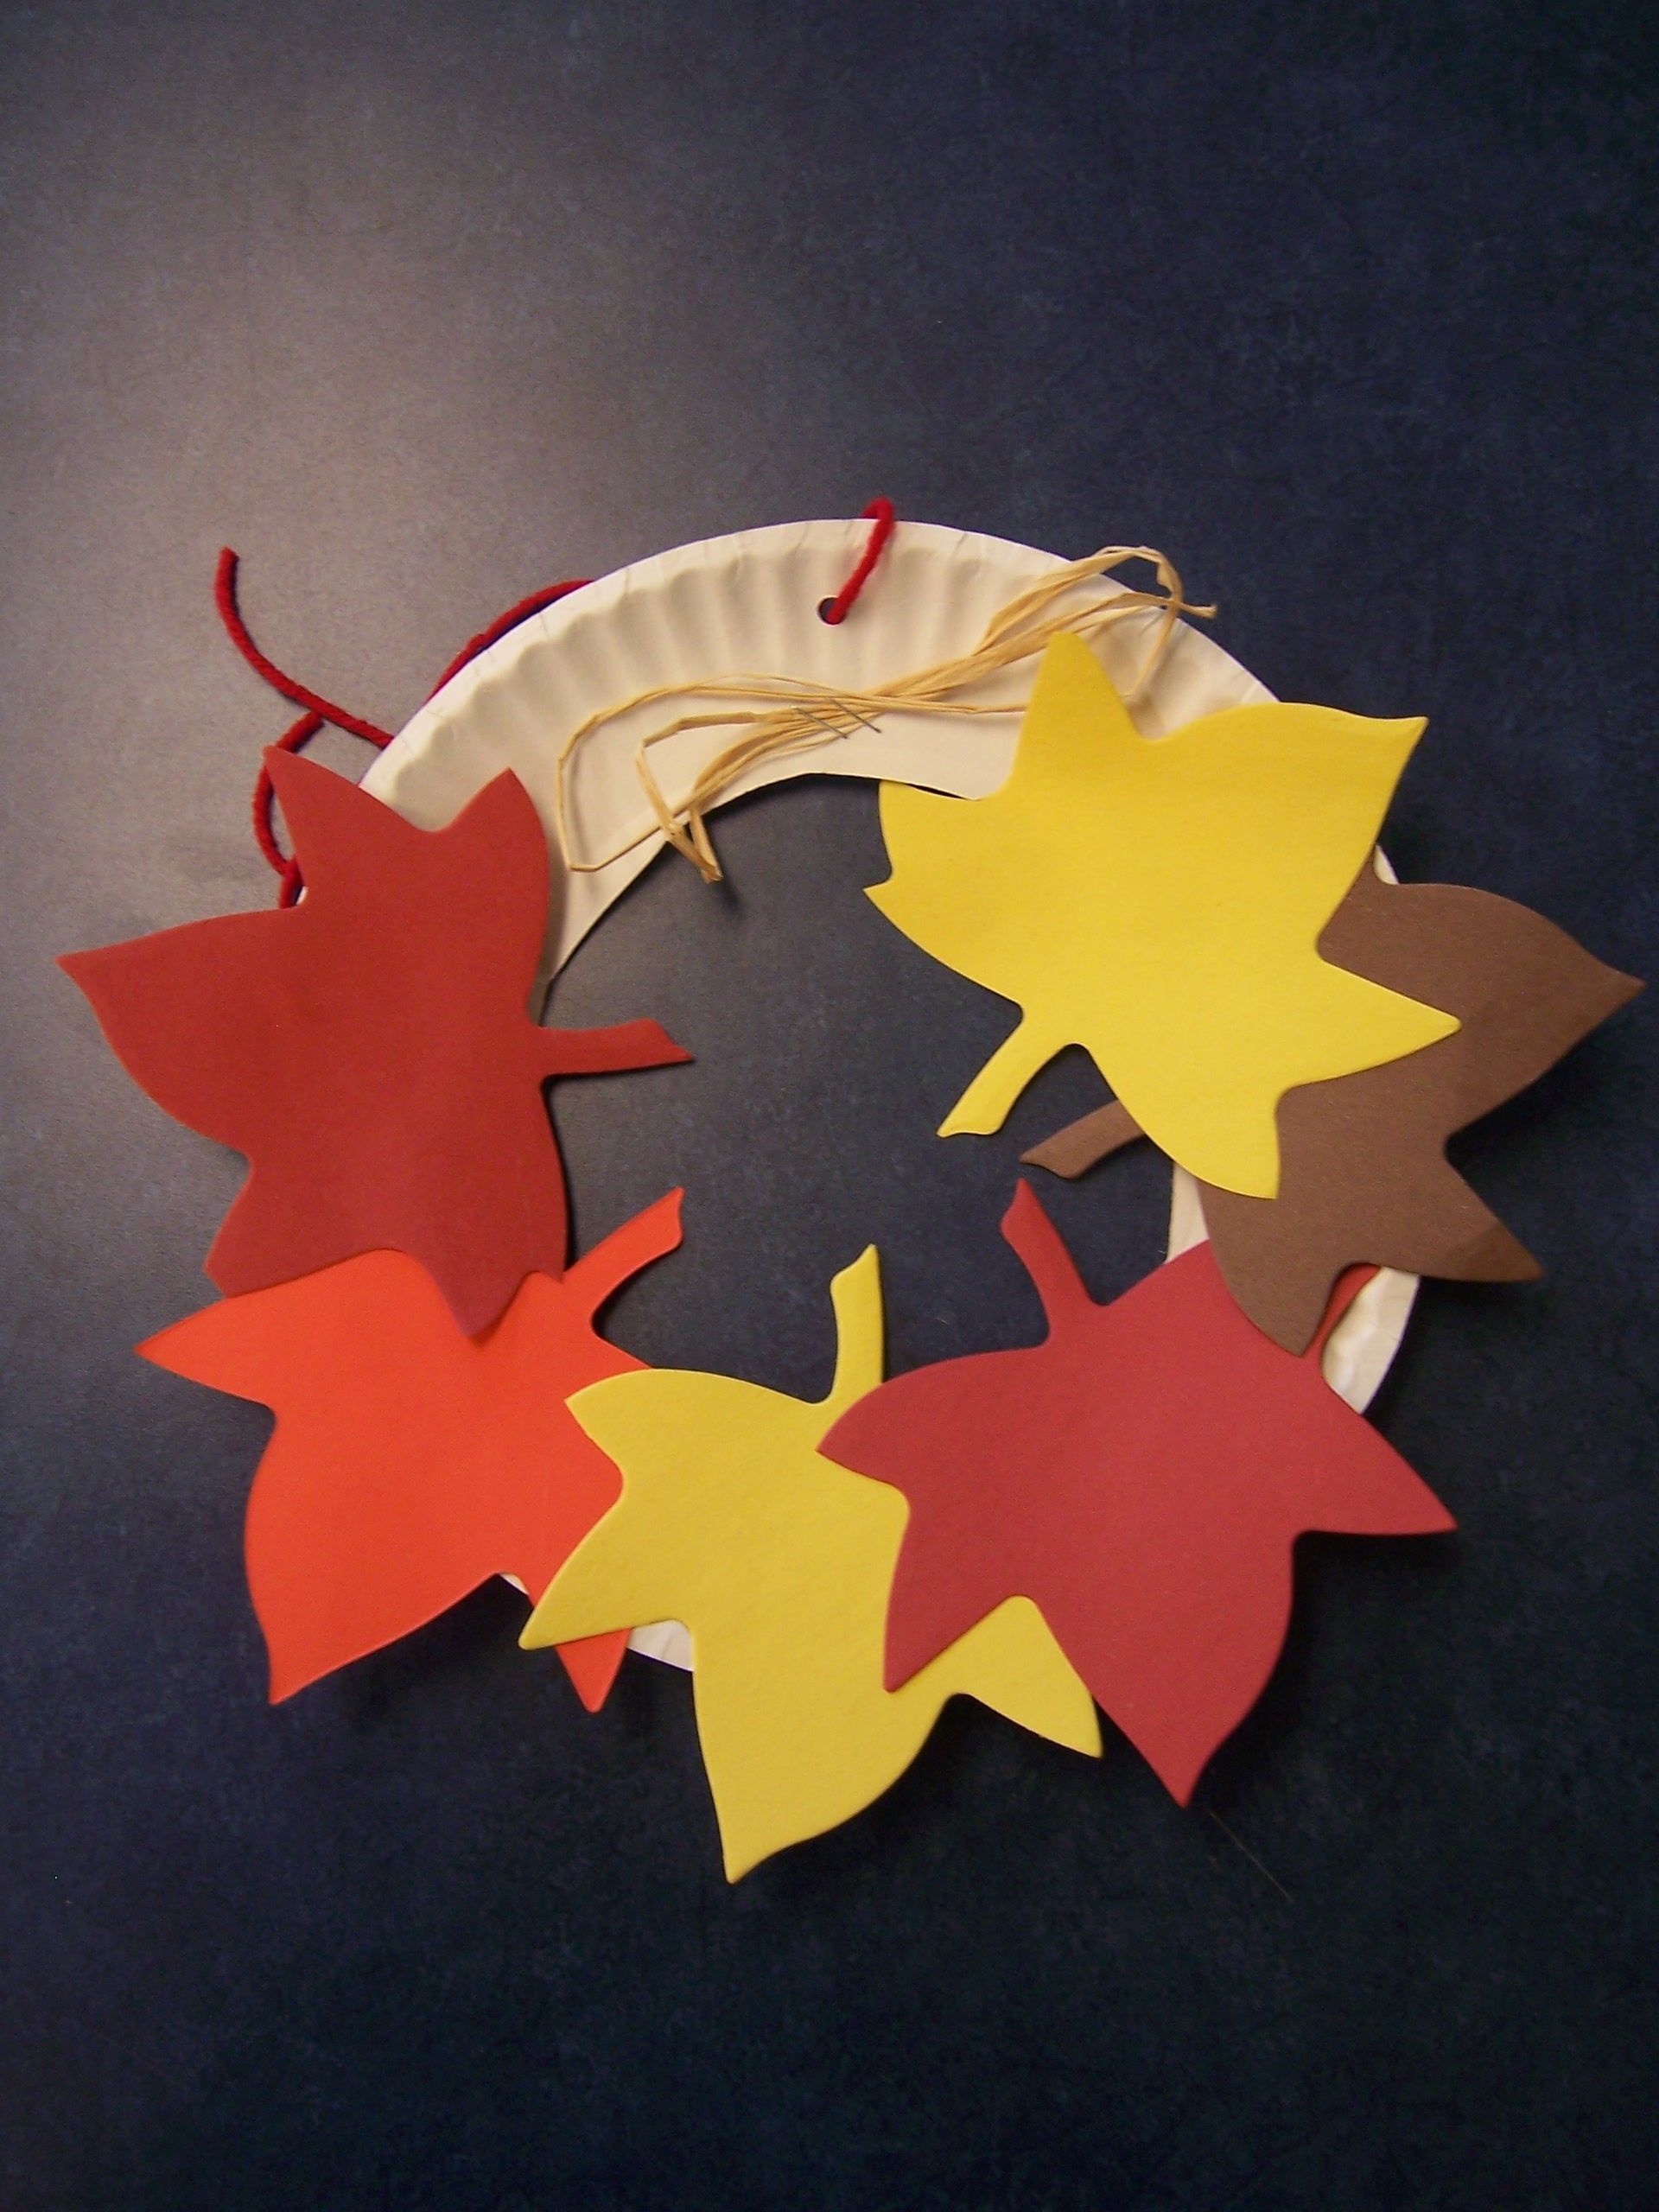 49++ Fun fall crafts for 3 year olds ideas